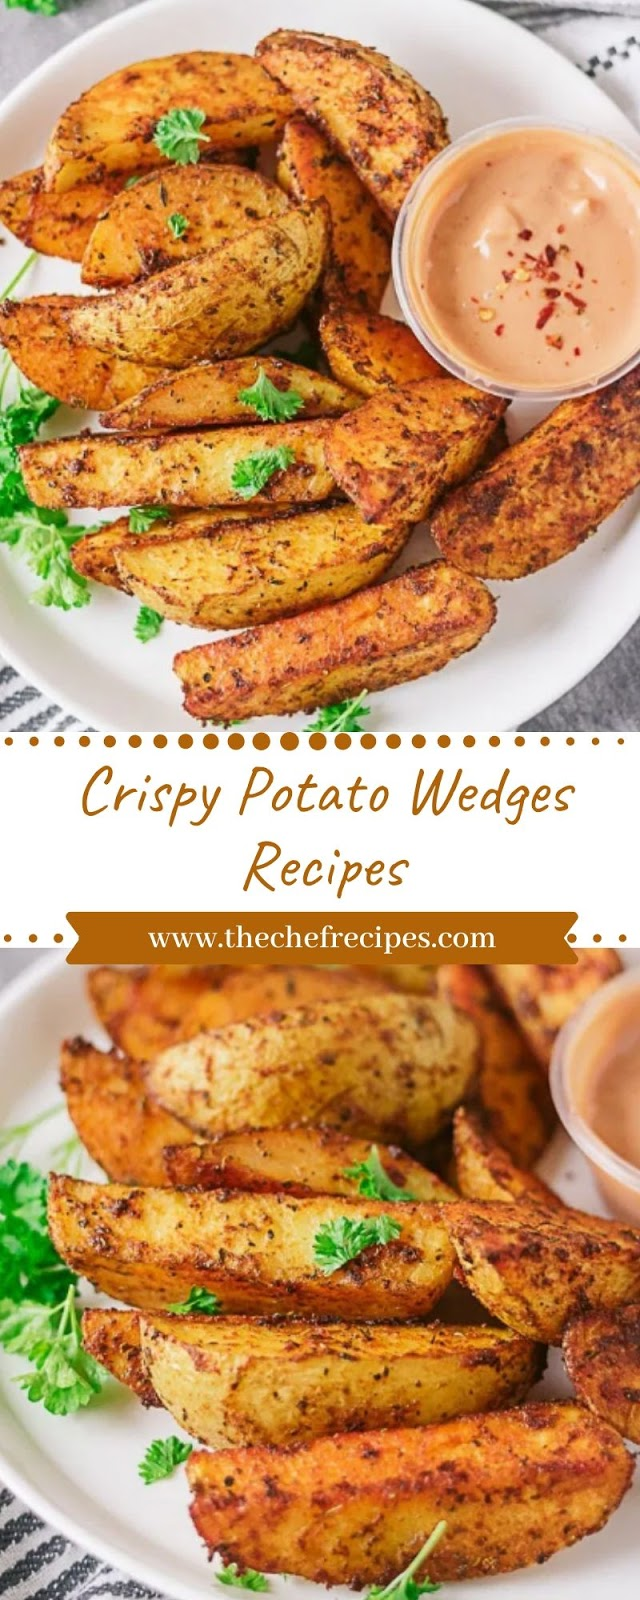 Crispy Potato Wedges Recipes